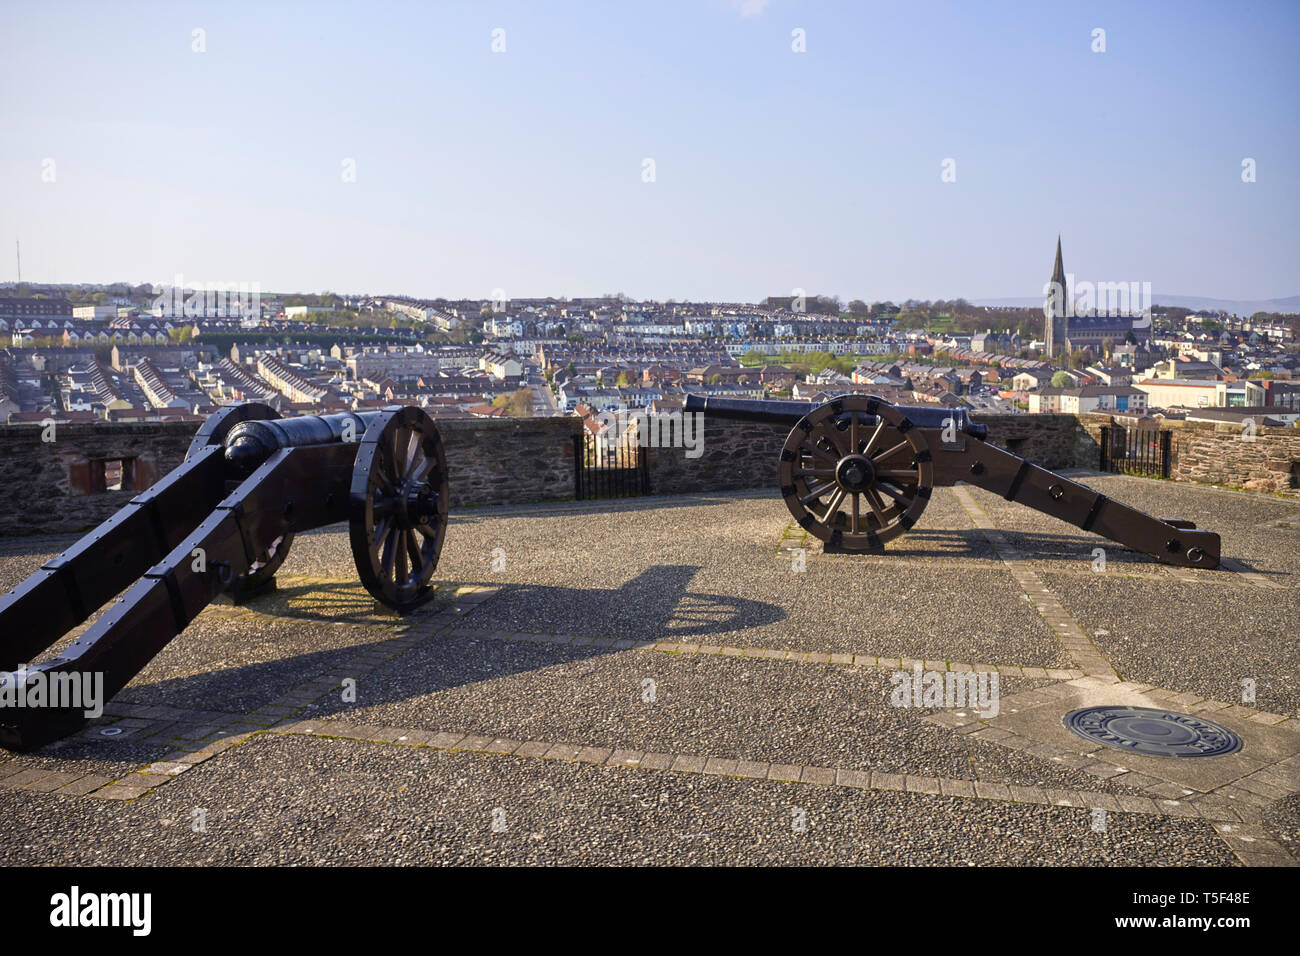 Two cannons used in the seige of Londonderry overlooking the Bogside area of the city - Stock Image